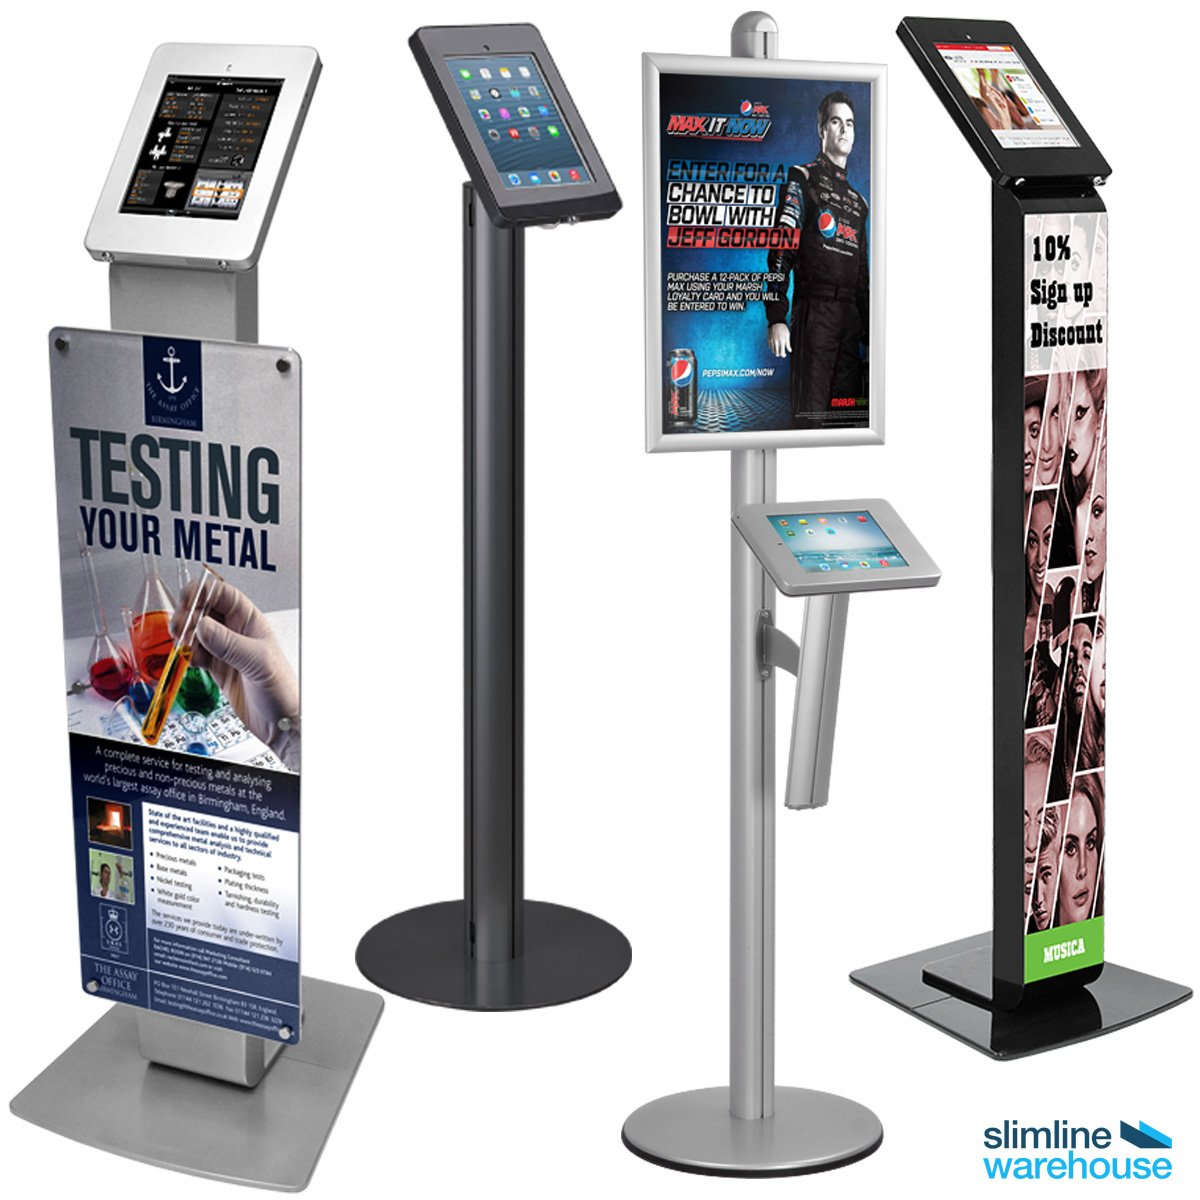 We live in a digital age where interactive displays encourage consumers to rate your business, sign up or browse products/services your business has to offer. https://t.co/ULsbCwSGrW  Show us how you use your products and tag us in pictures! https://t.co/RhLc9jkuI2